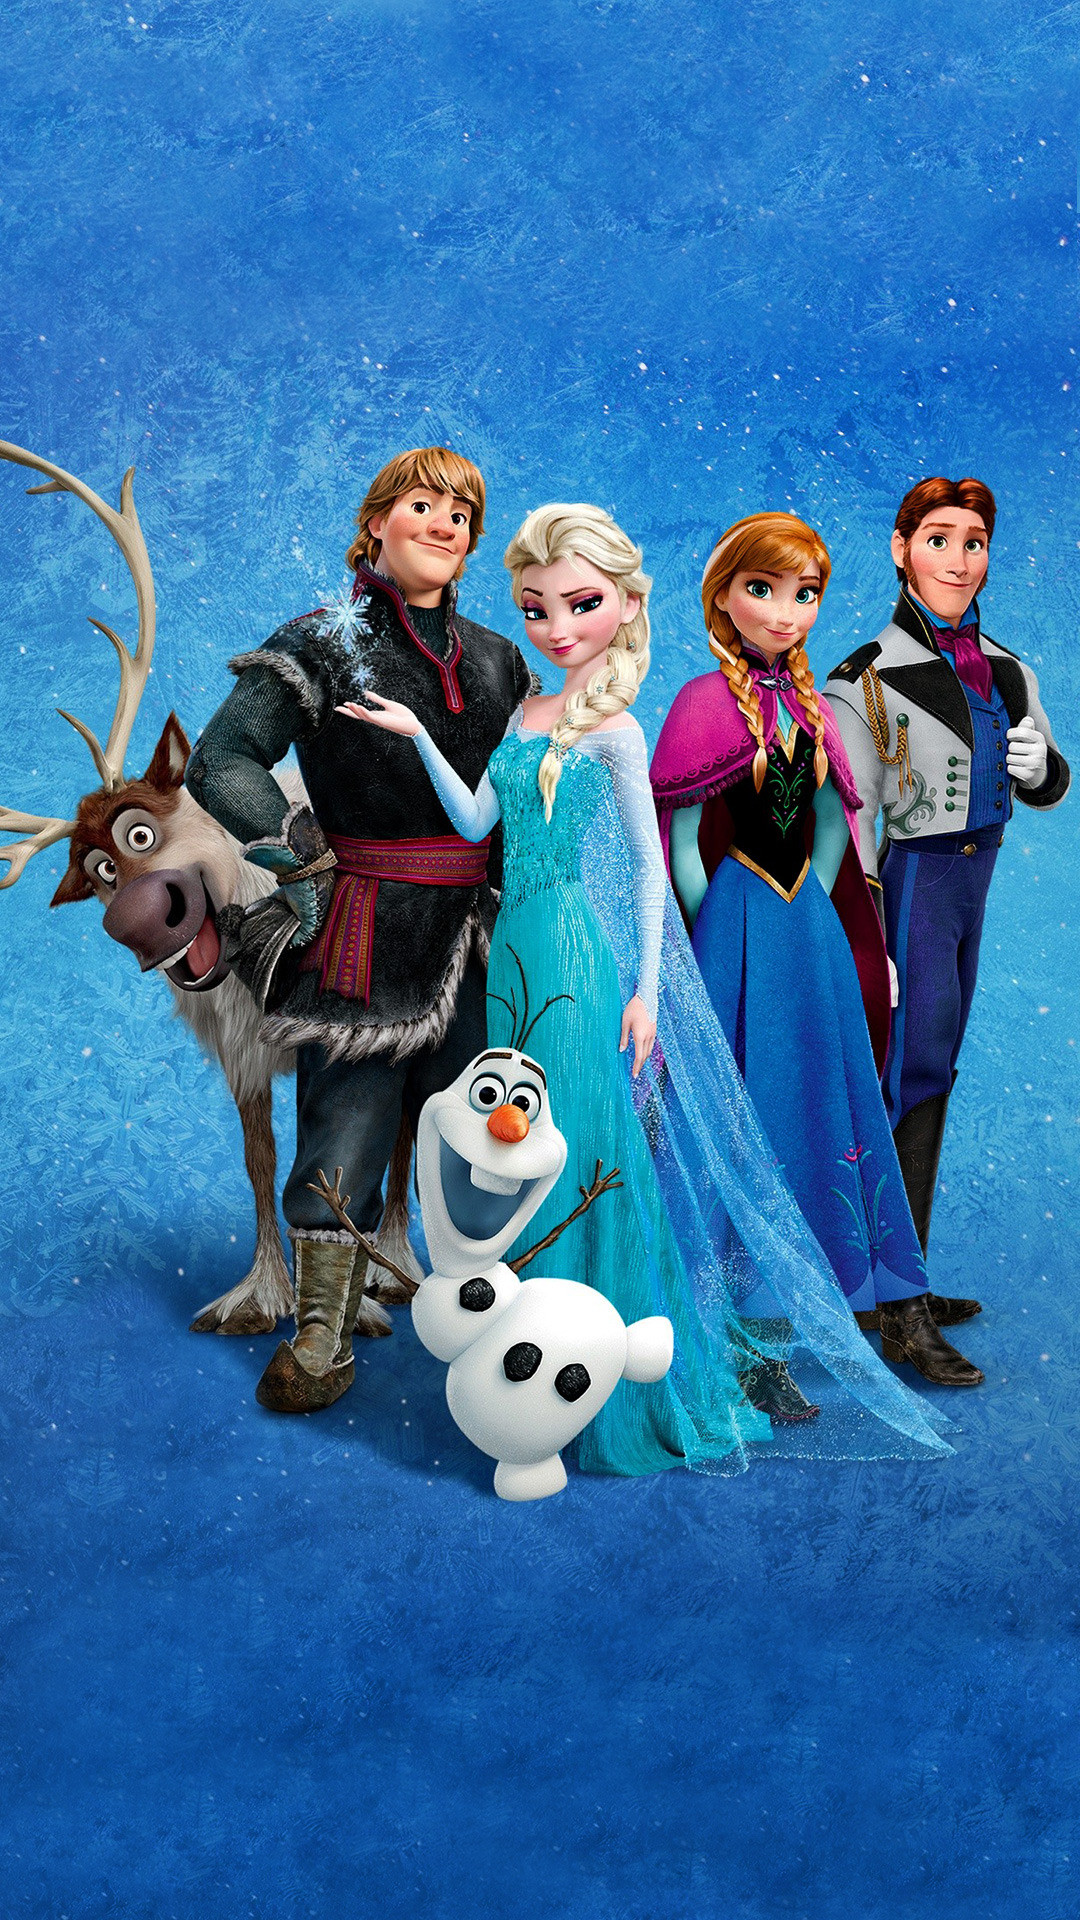 frozen wallpaper for phone,animated cartoon,toy,doll,animation,action figure